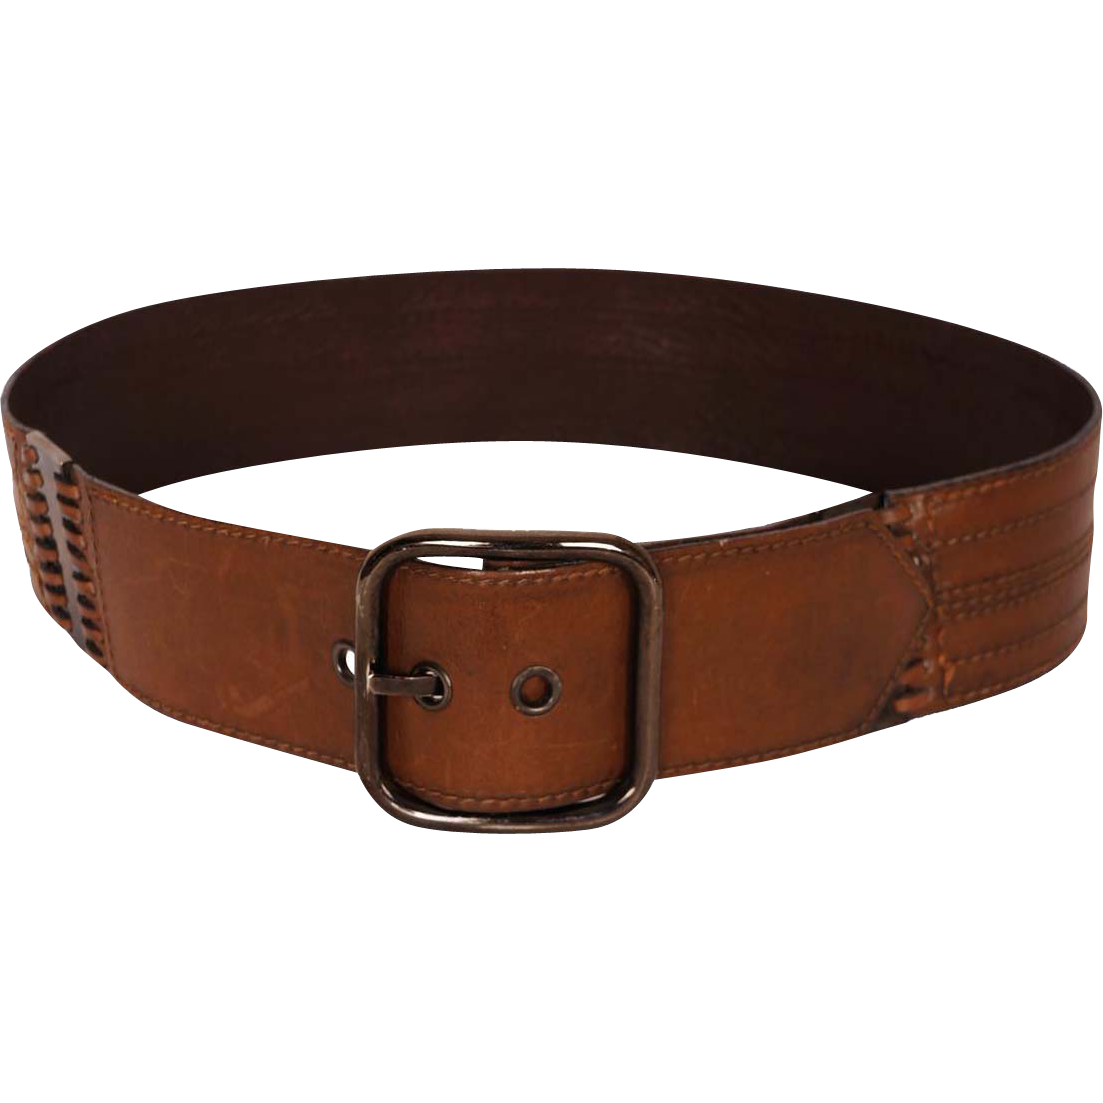 Get free shipping on designer belts for women, chain belts & leather belts in Tory's new collection. View the new looks online at smileqbl.gq